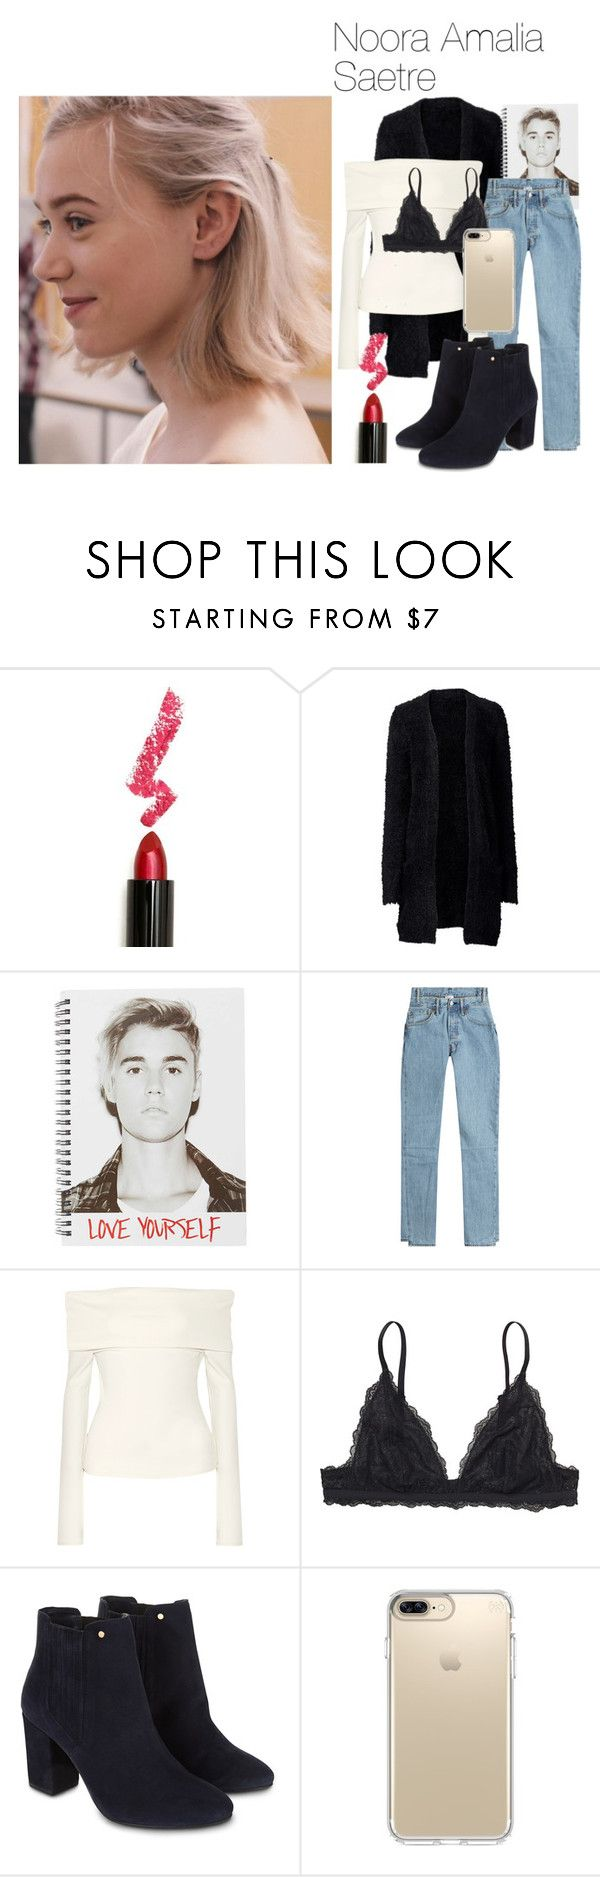 """""""Noora Amalia Saetre Skam"""" by valeria-papina on Polyvore featuring мода, Lime Crime, Justin Bieber, Vetements, The Row, Monki, Monsoon и Speck"""